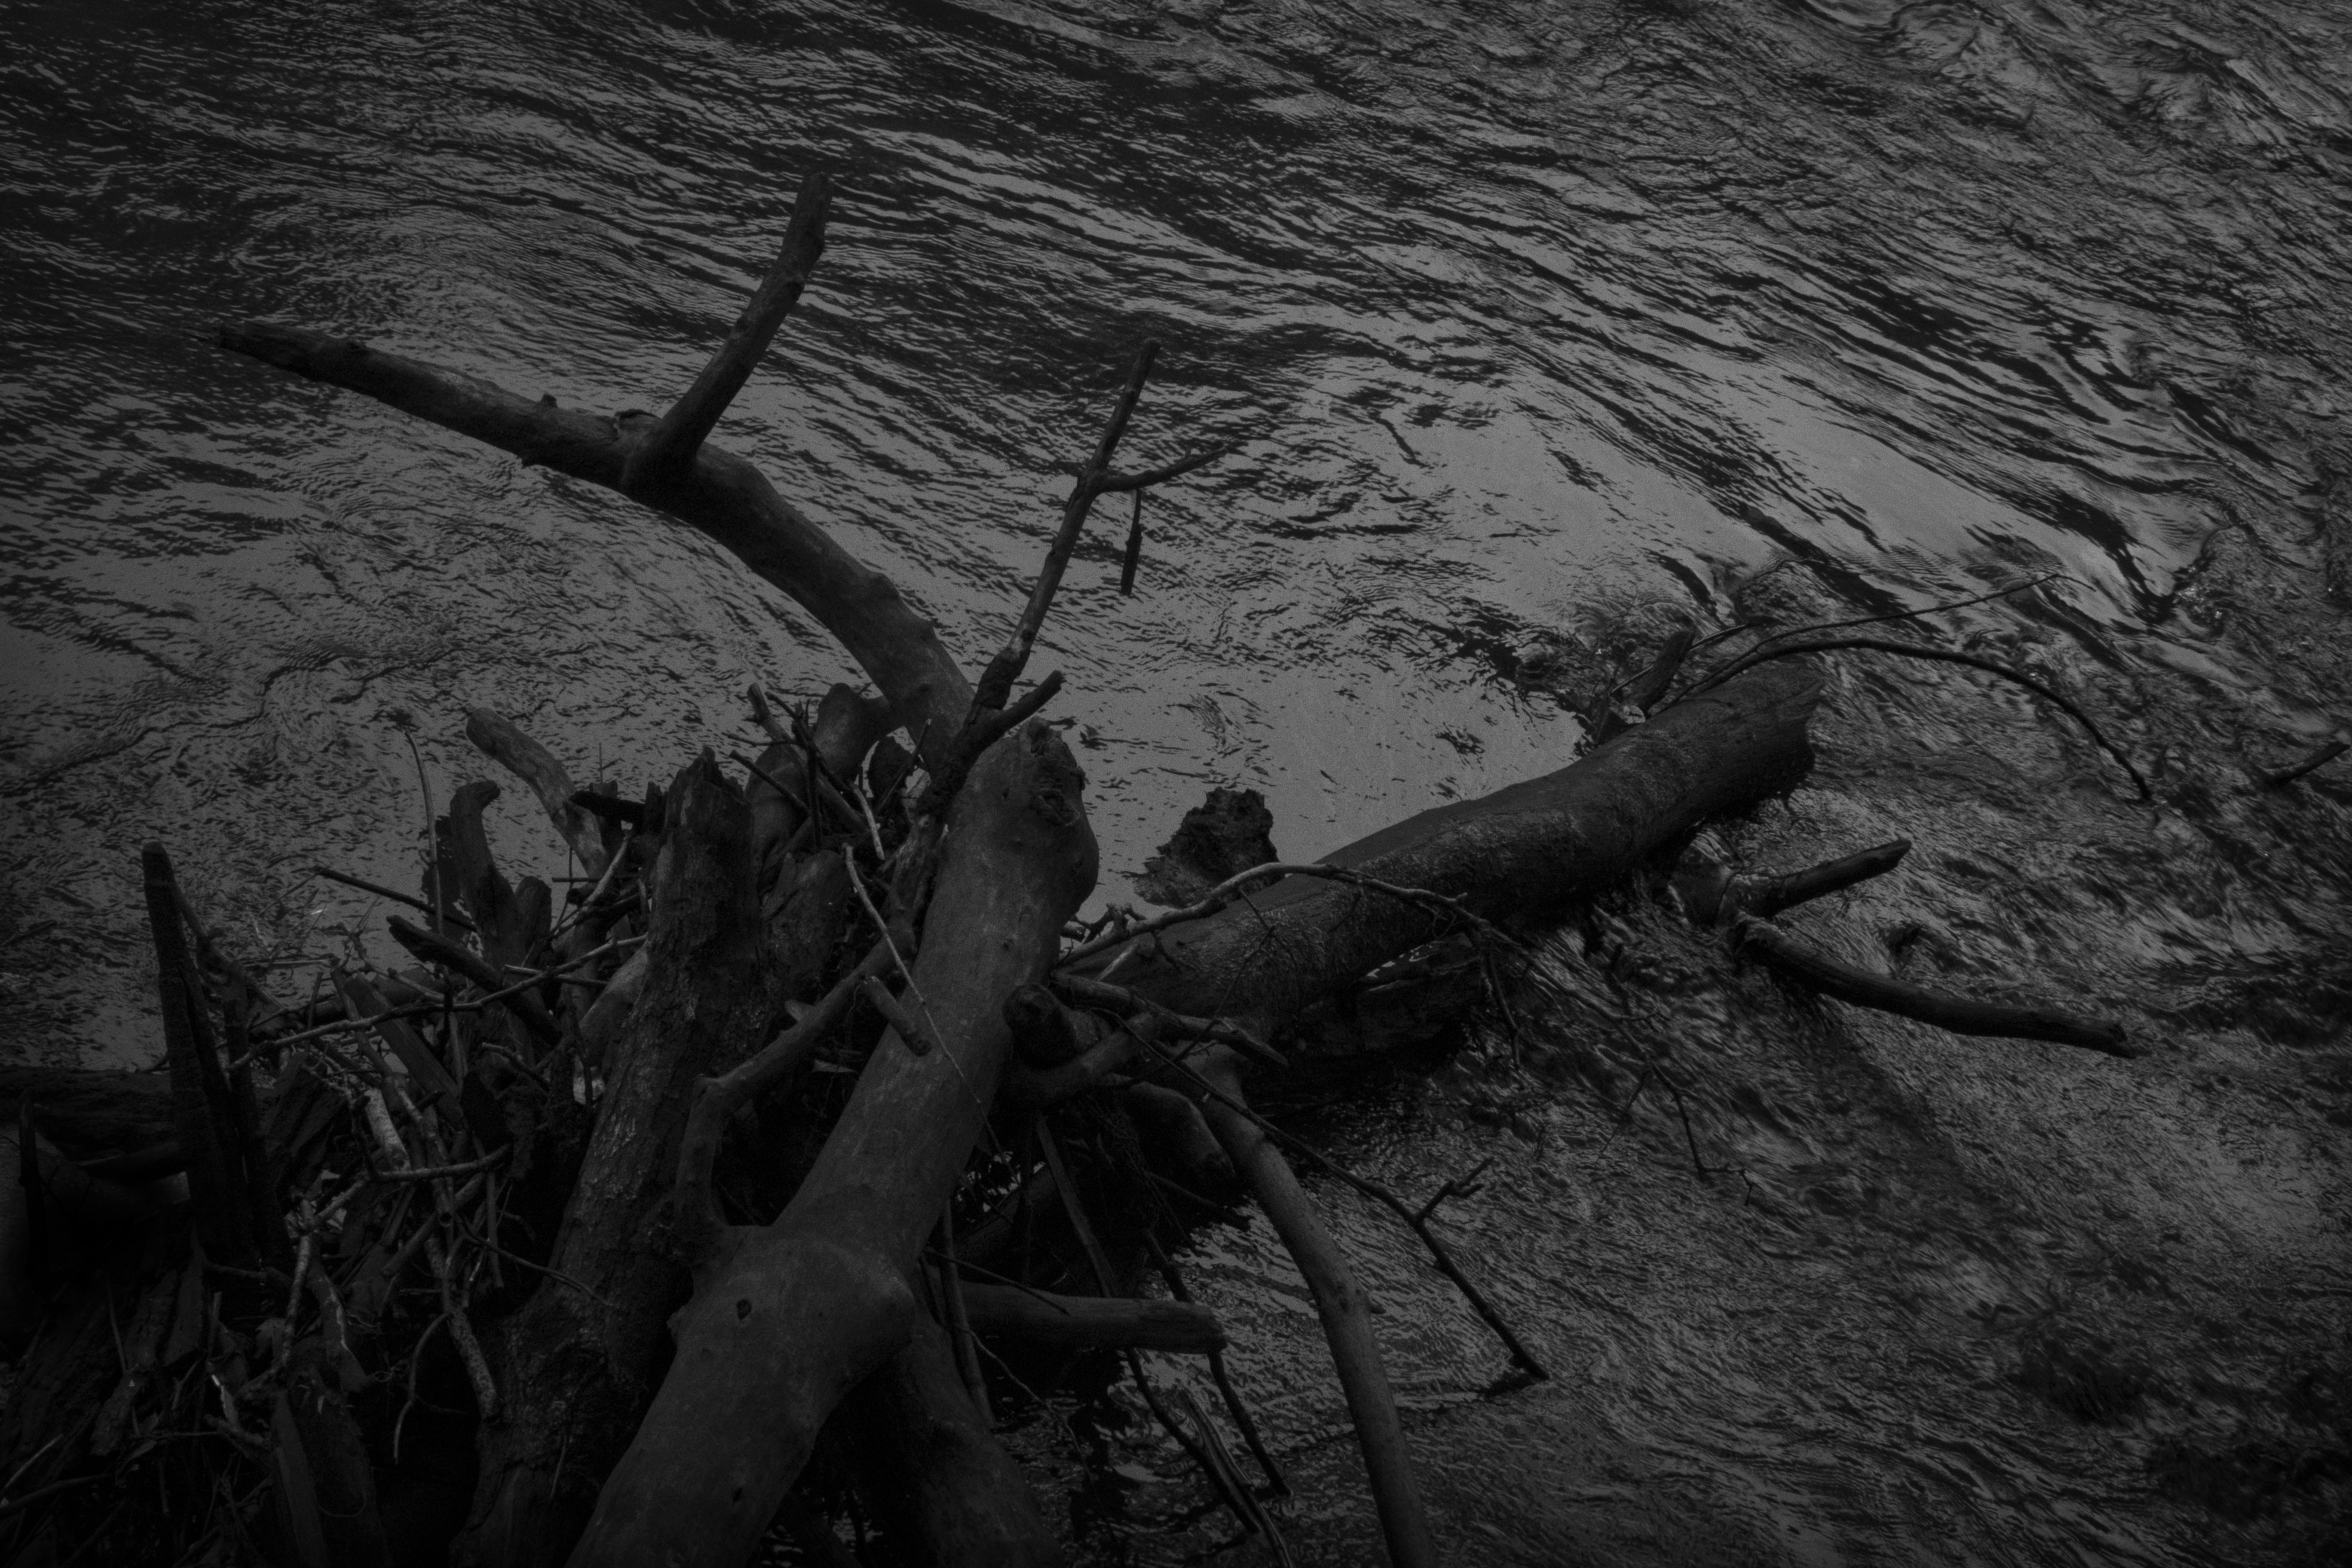 By The Dark Water III